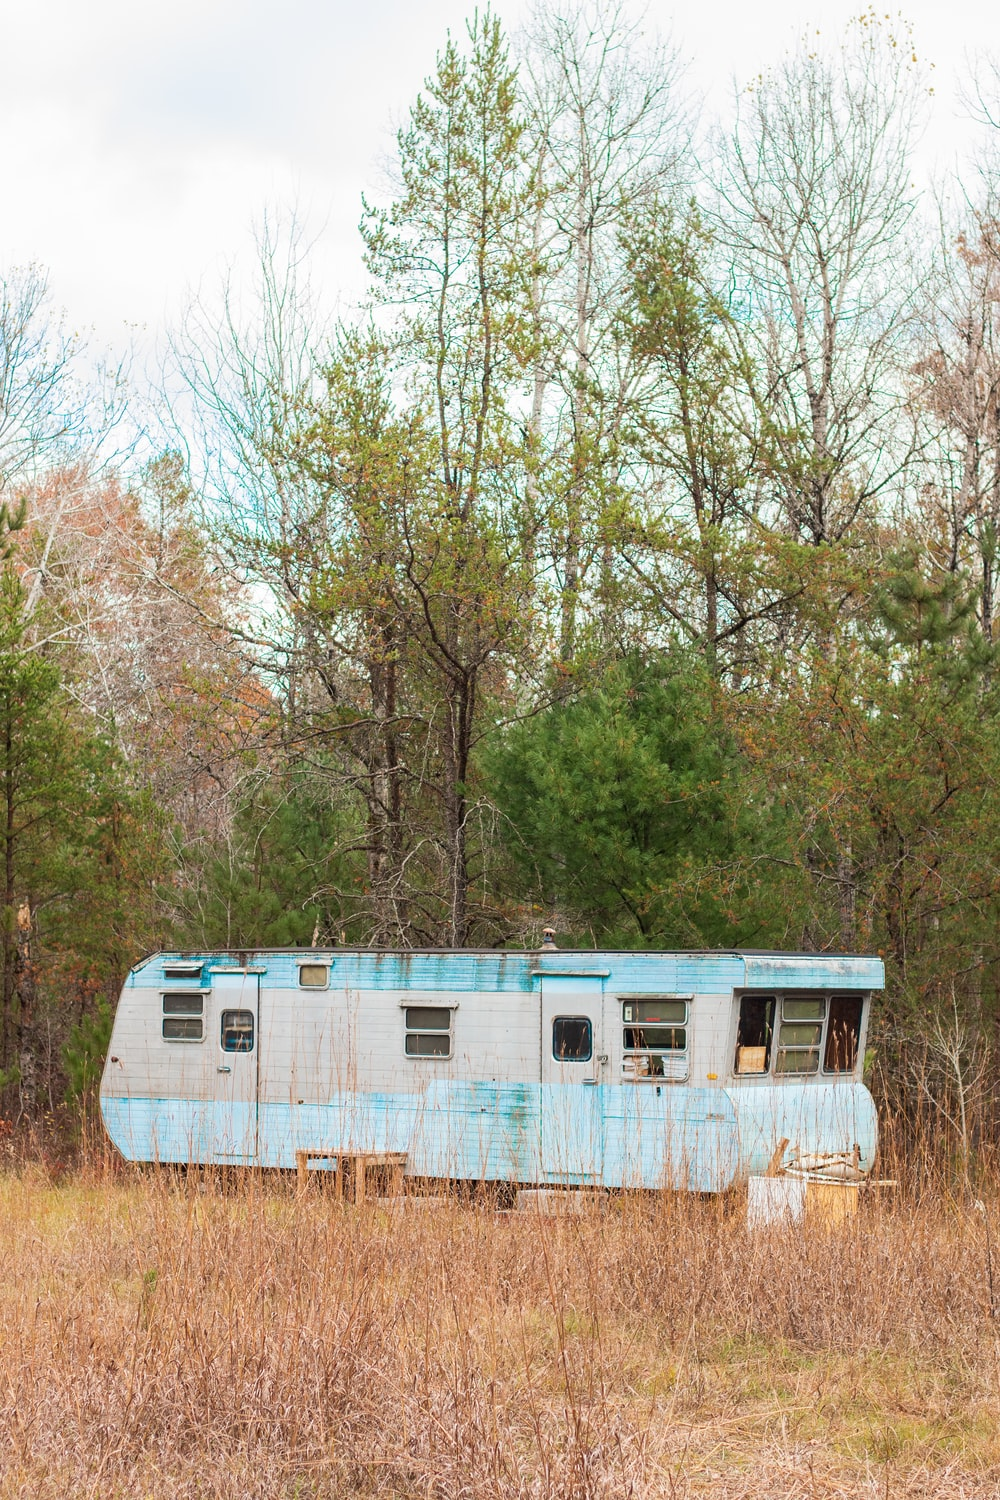 blue and white camper trailer beside trees during daytime